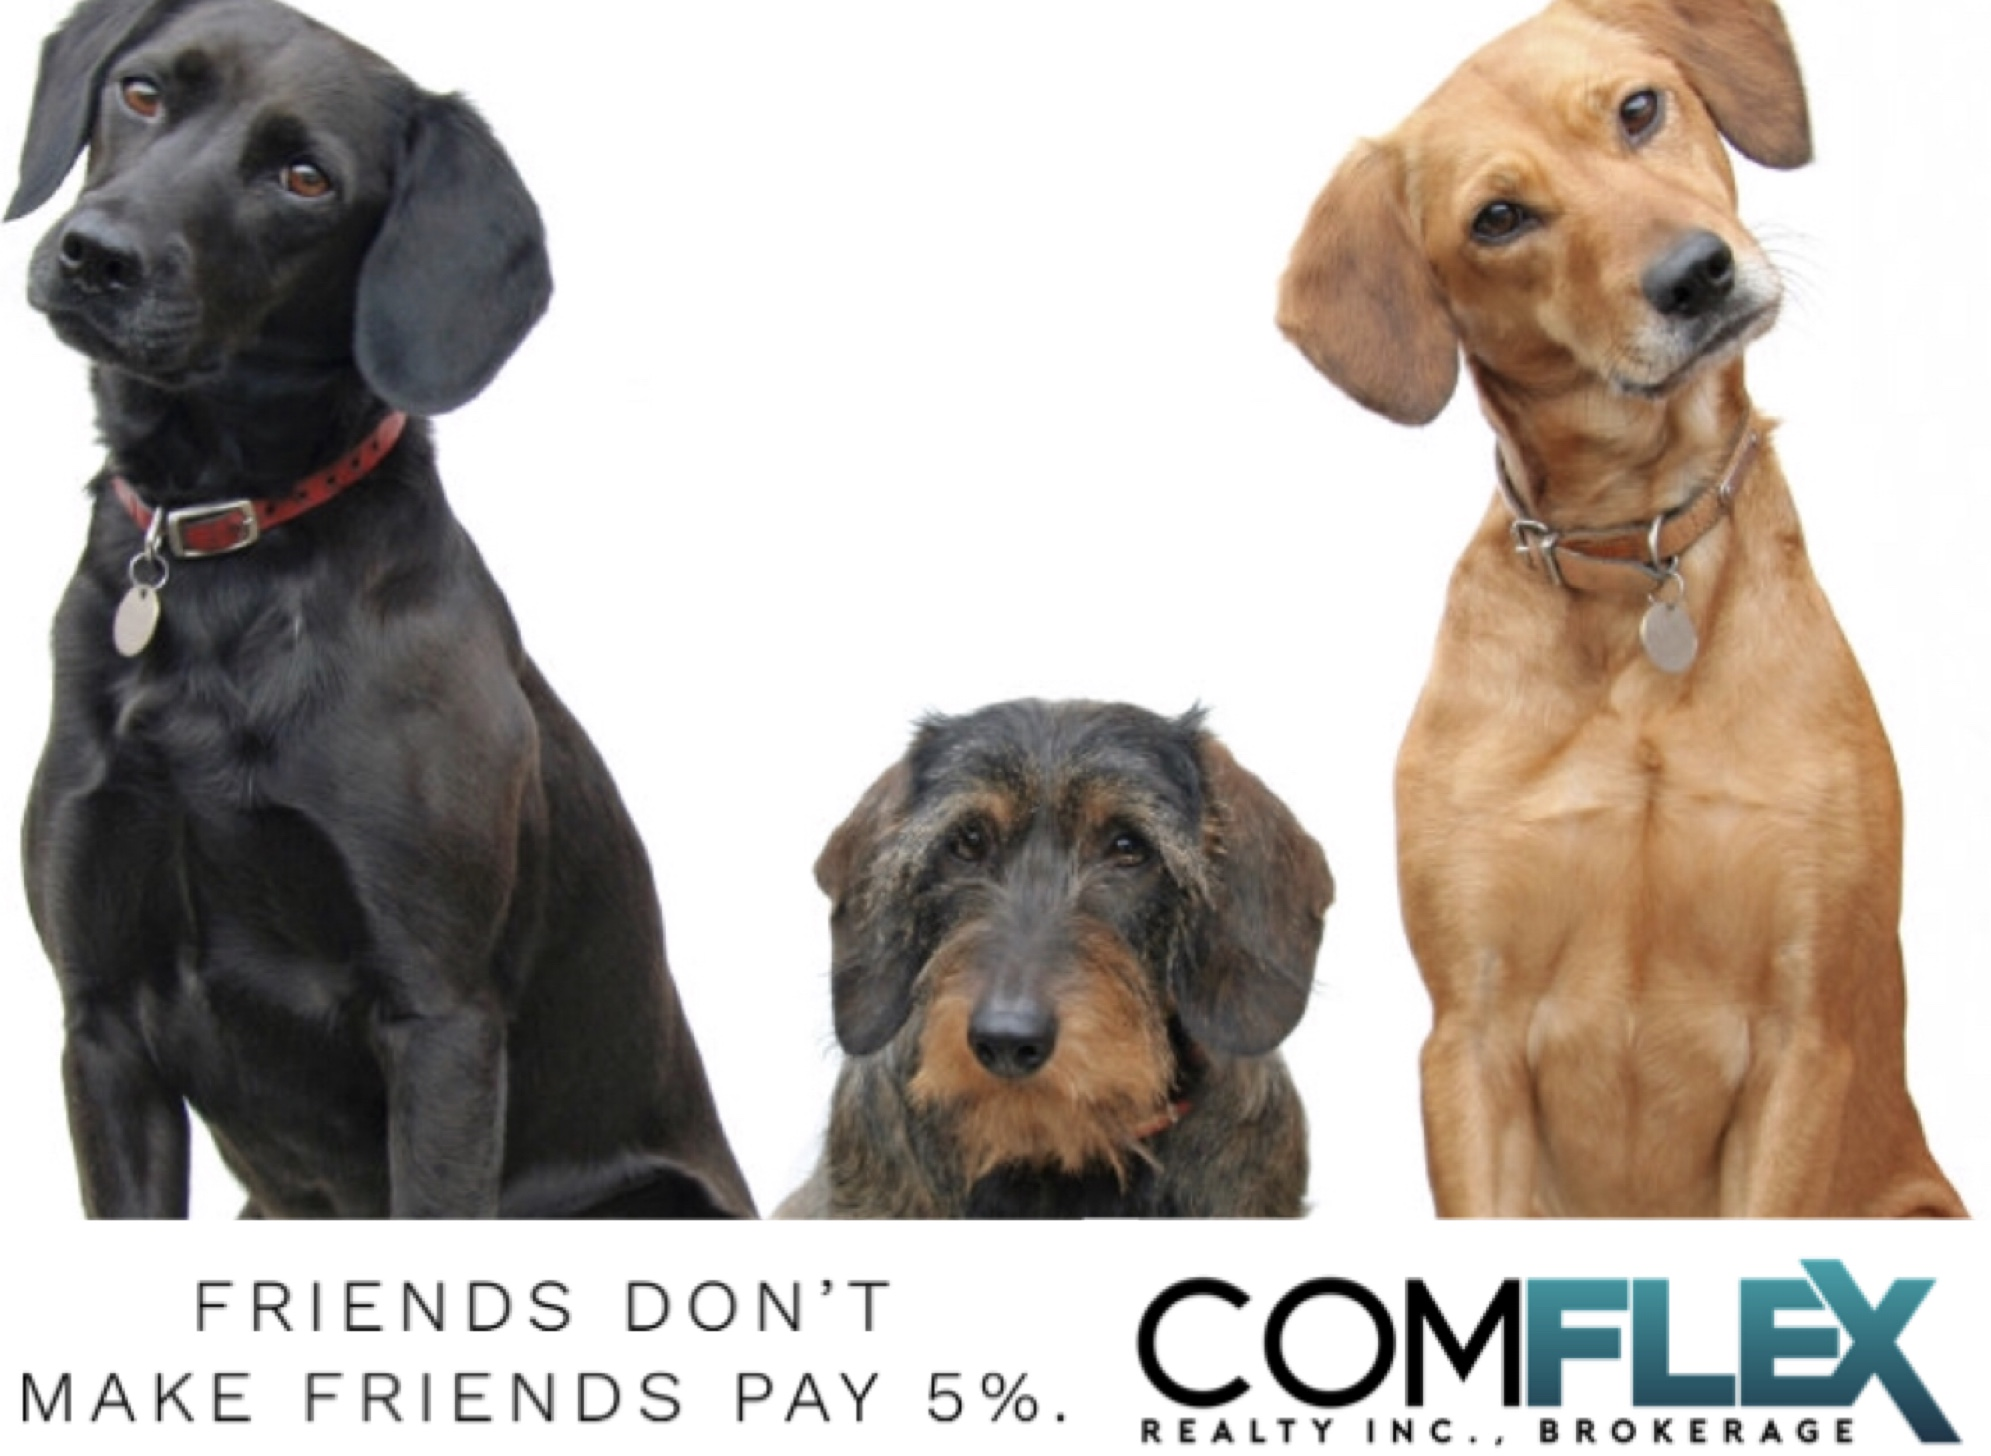 YOU COULD PAY MORE...BUT WHY WOULD YOU? LIST FOR 1% WITH COMFLEX